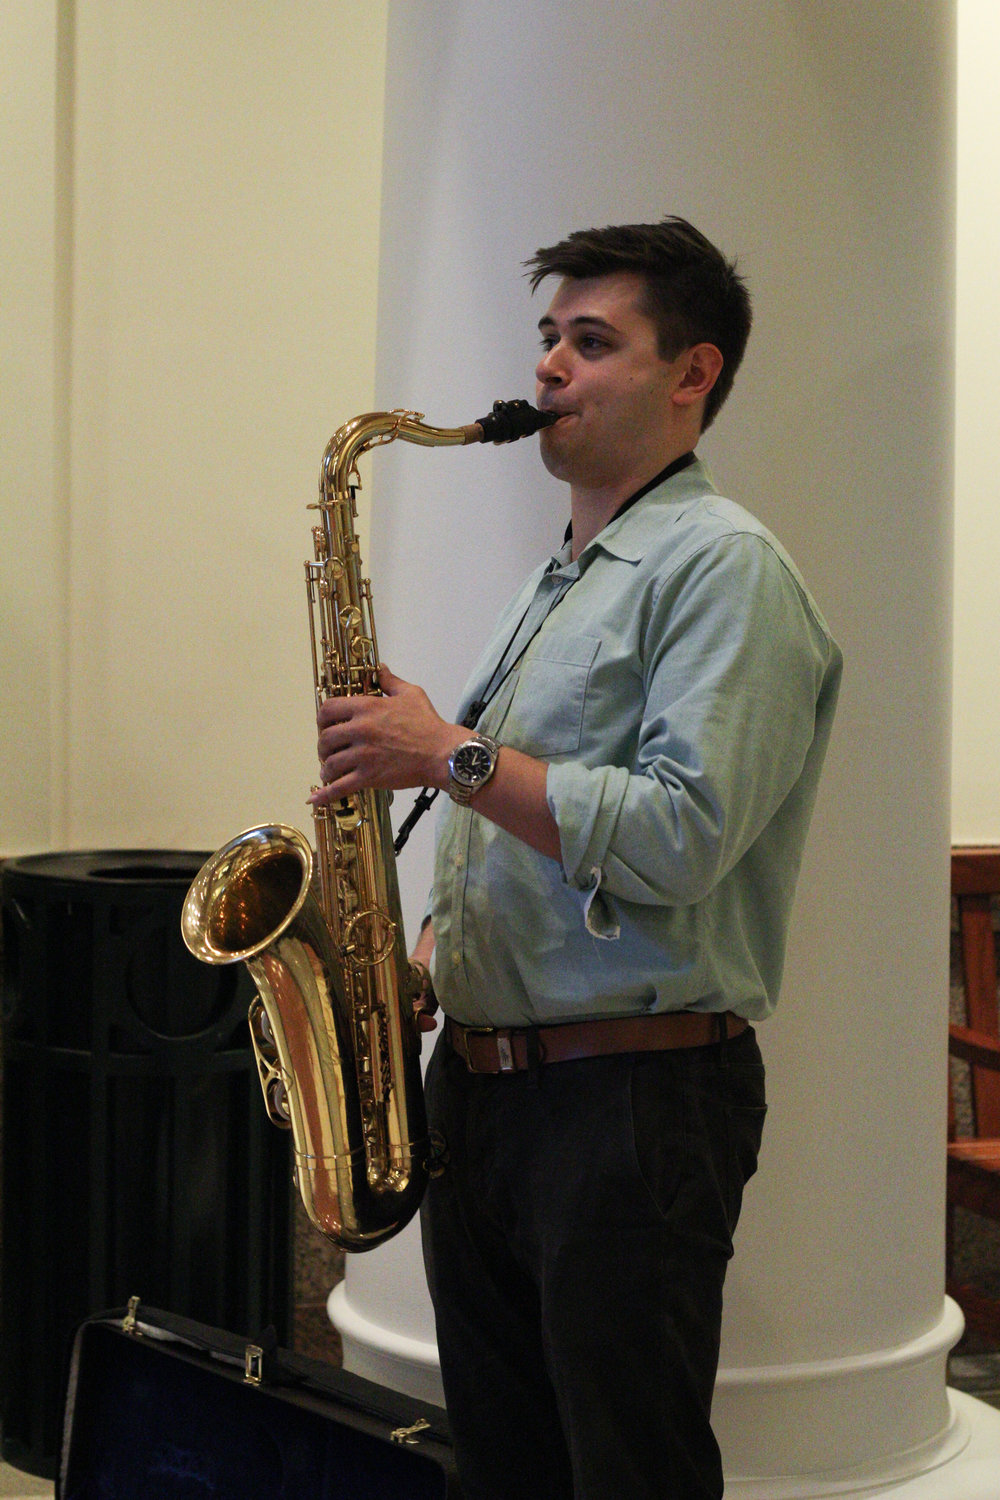 Creative Waco intern Michael Incavo plays saxophone outside the reception hall.